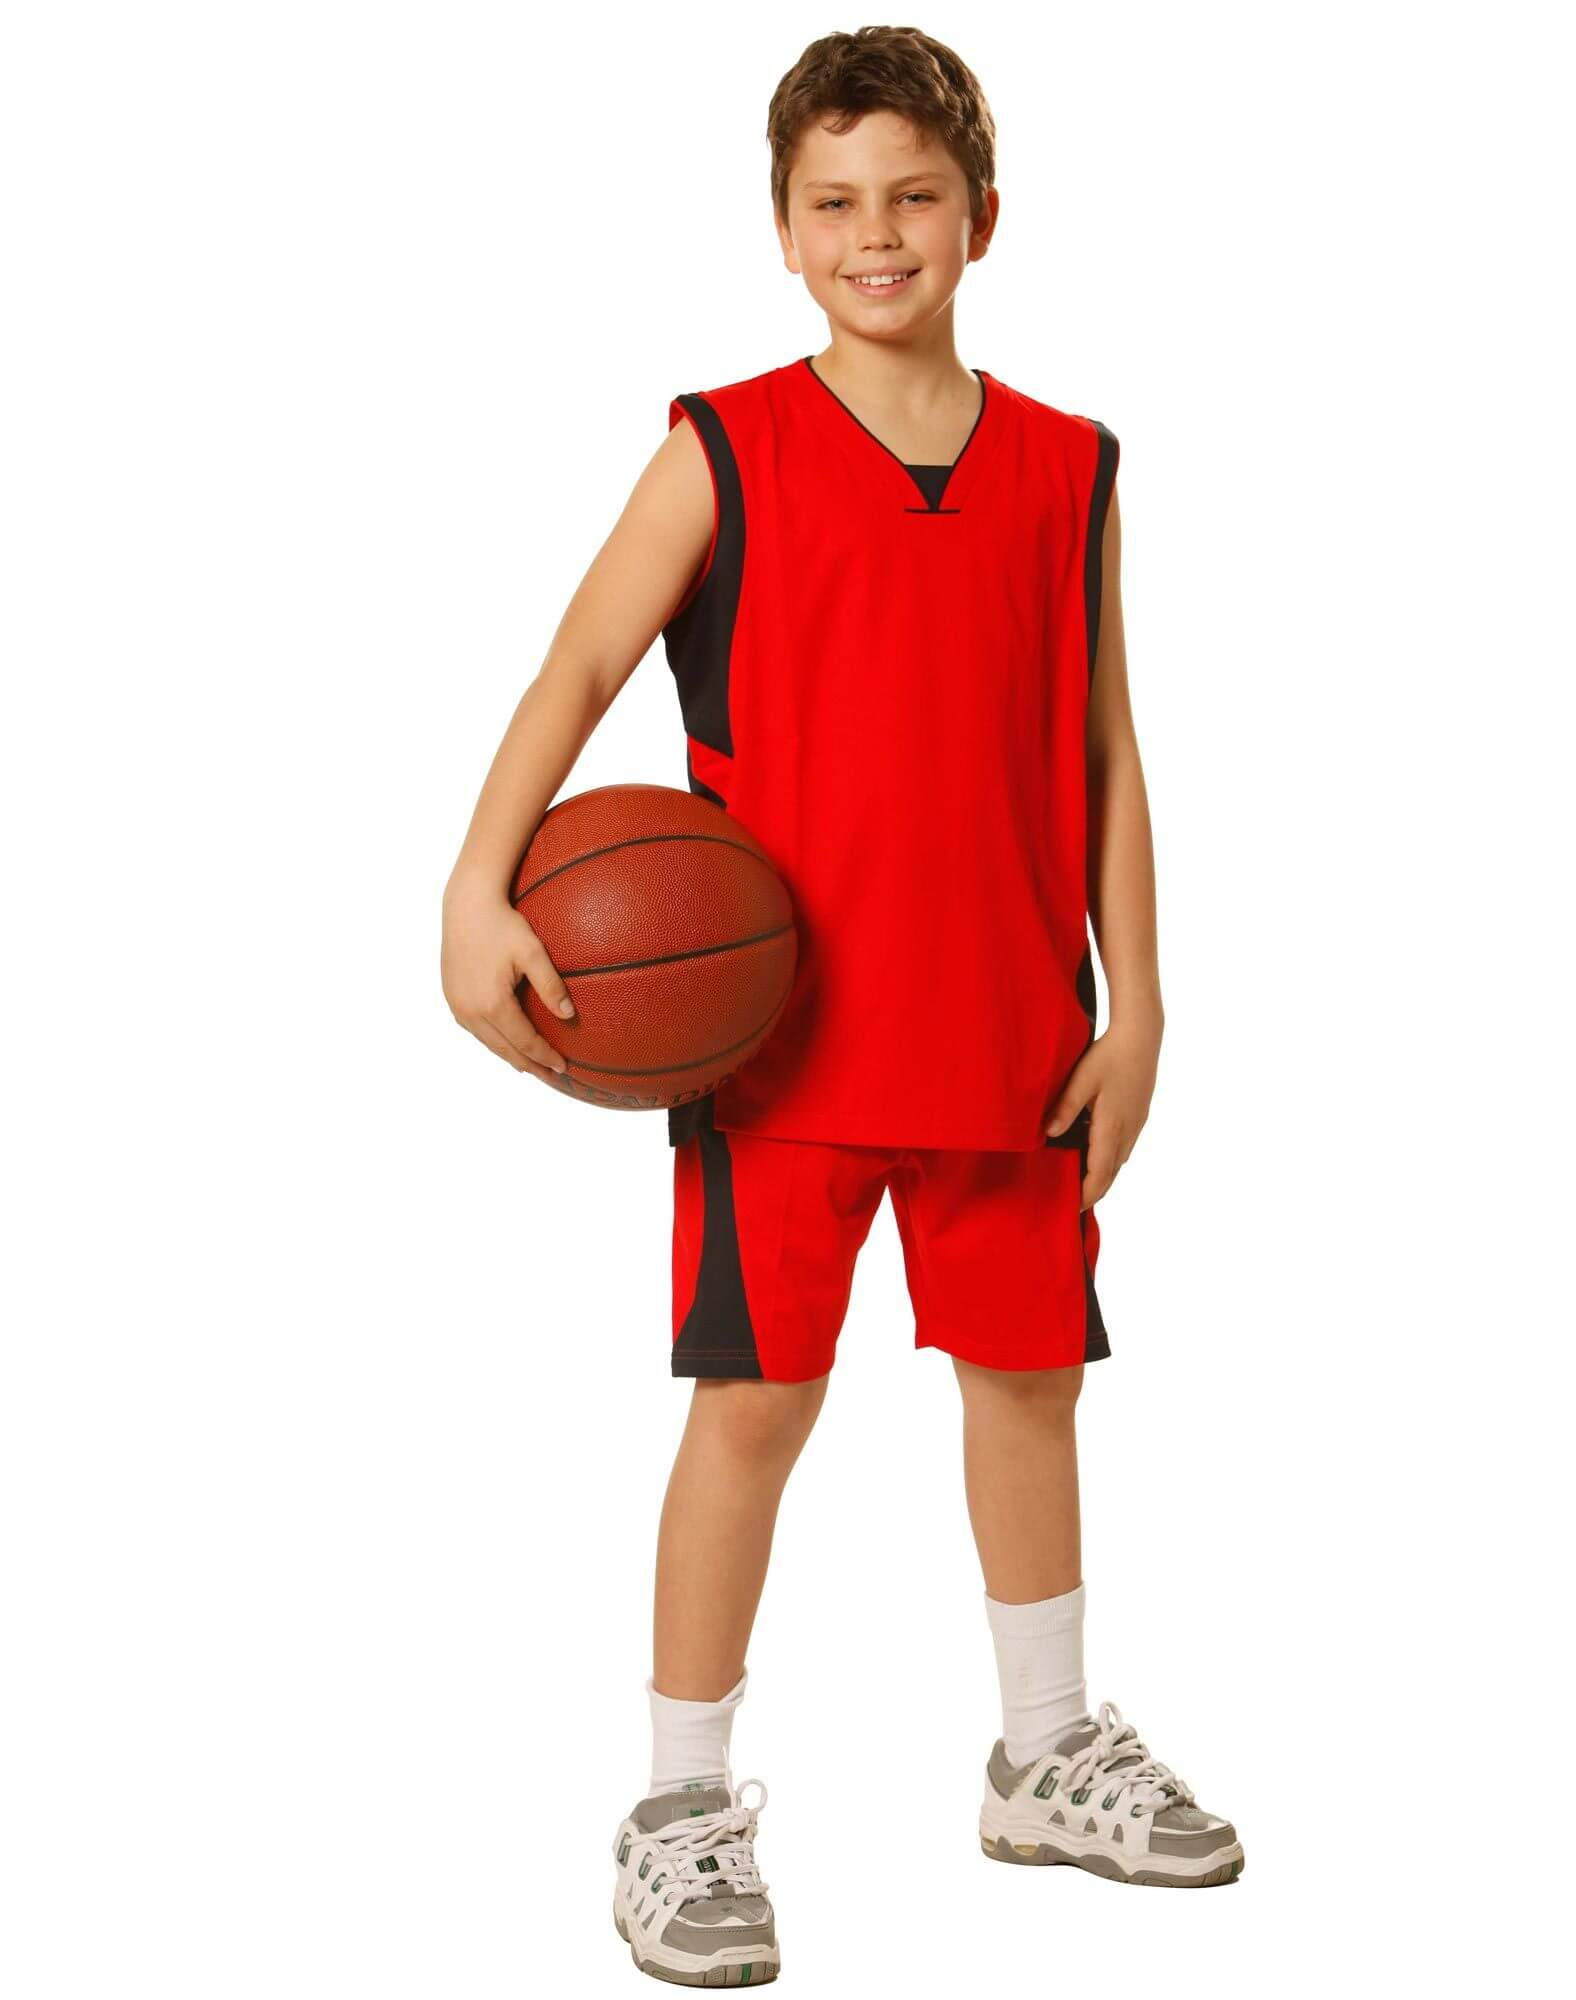 Kids Basketball Manufacturers in Australia